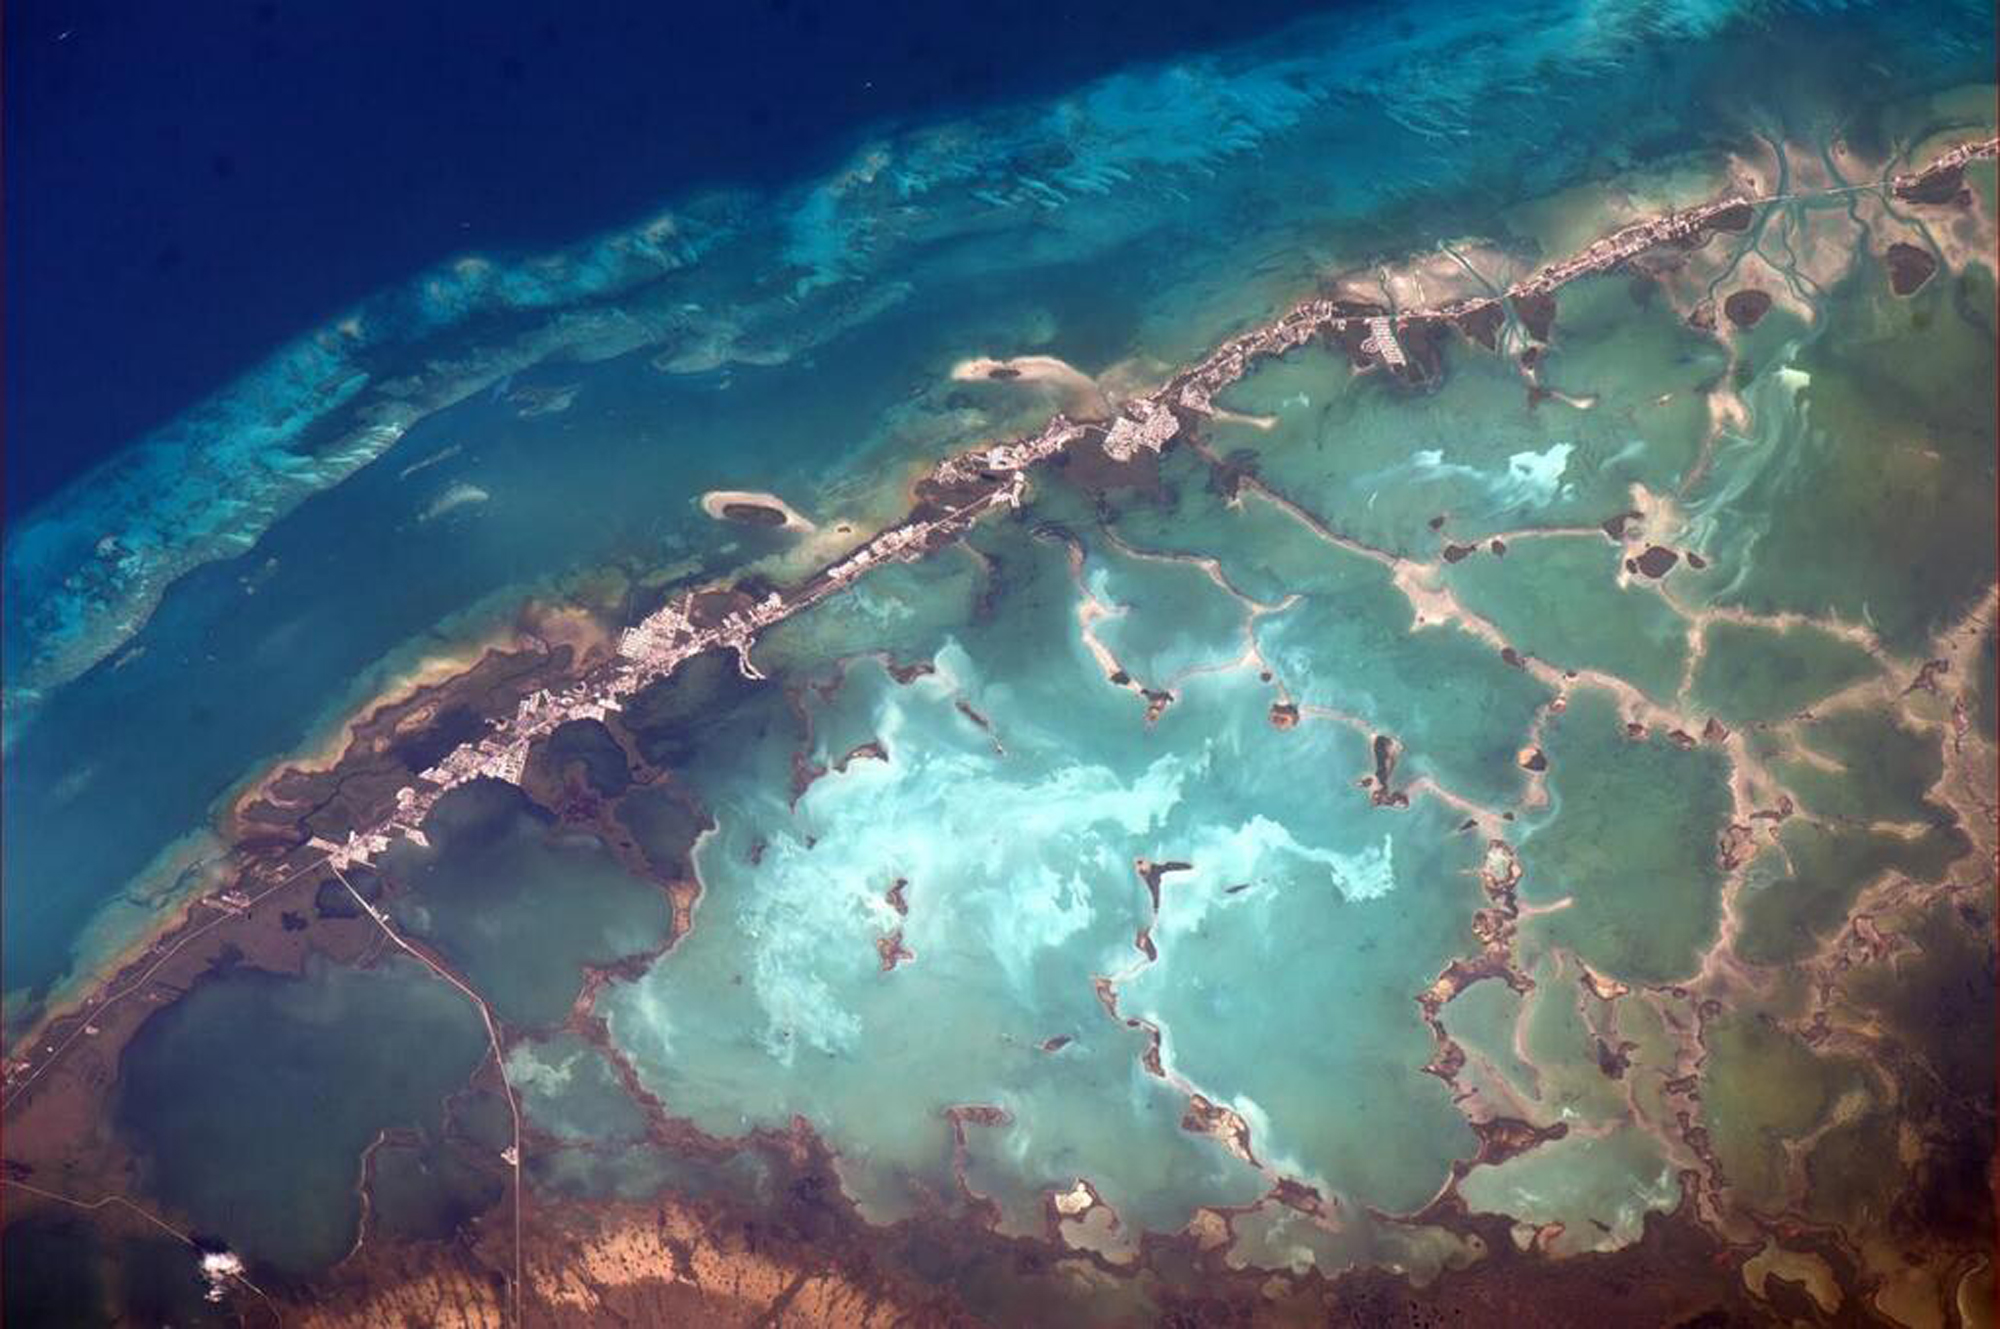 This image provided by NASA March 16, 2014 shows a portion of the Florida Keys taken by Astronaut Rick Mastracchio from the International Space Station. (AP Photo/NASA, Rich Mastracchio)